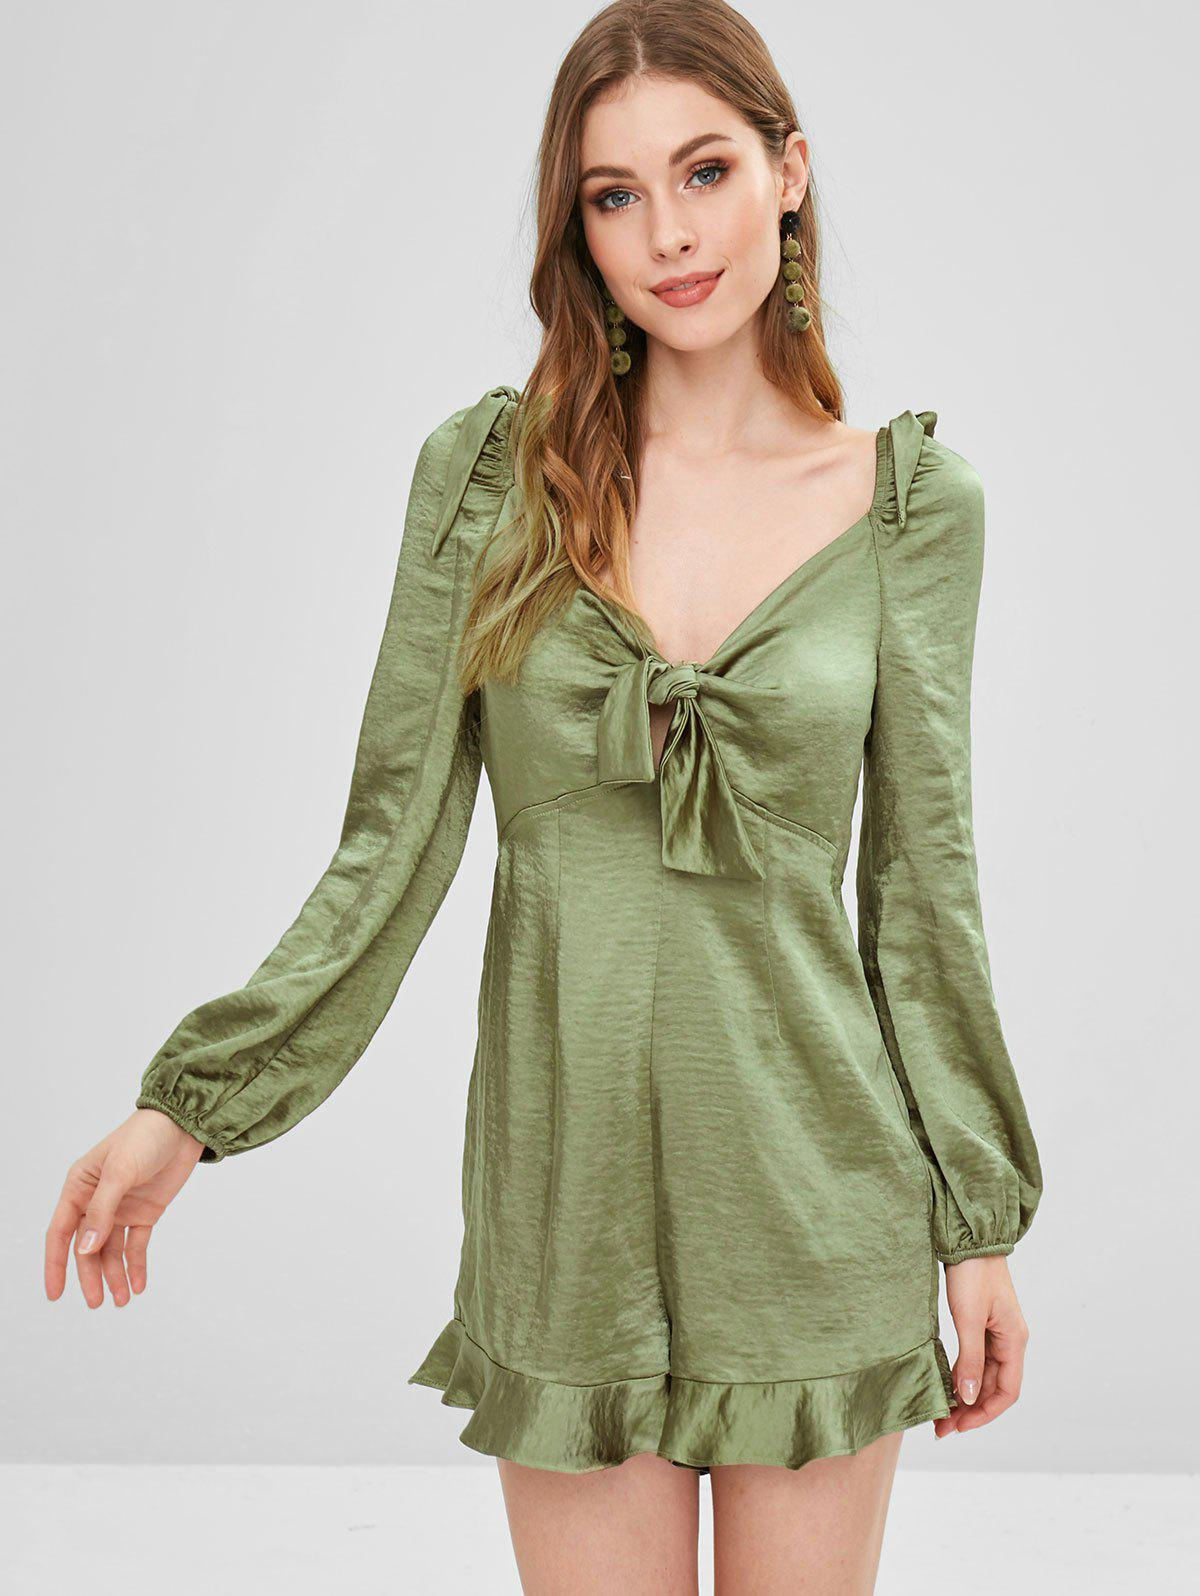 ZAFUL Empire Waist Knotted Satin Romper фото